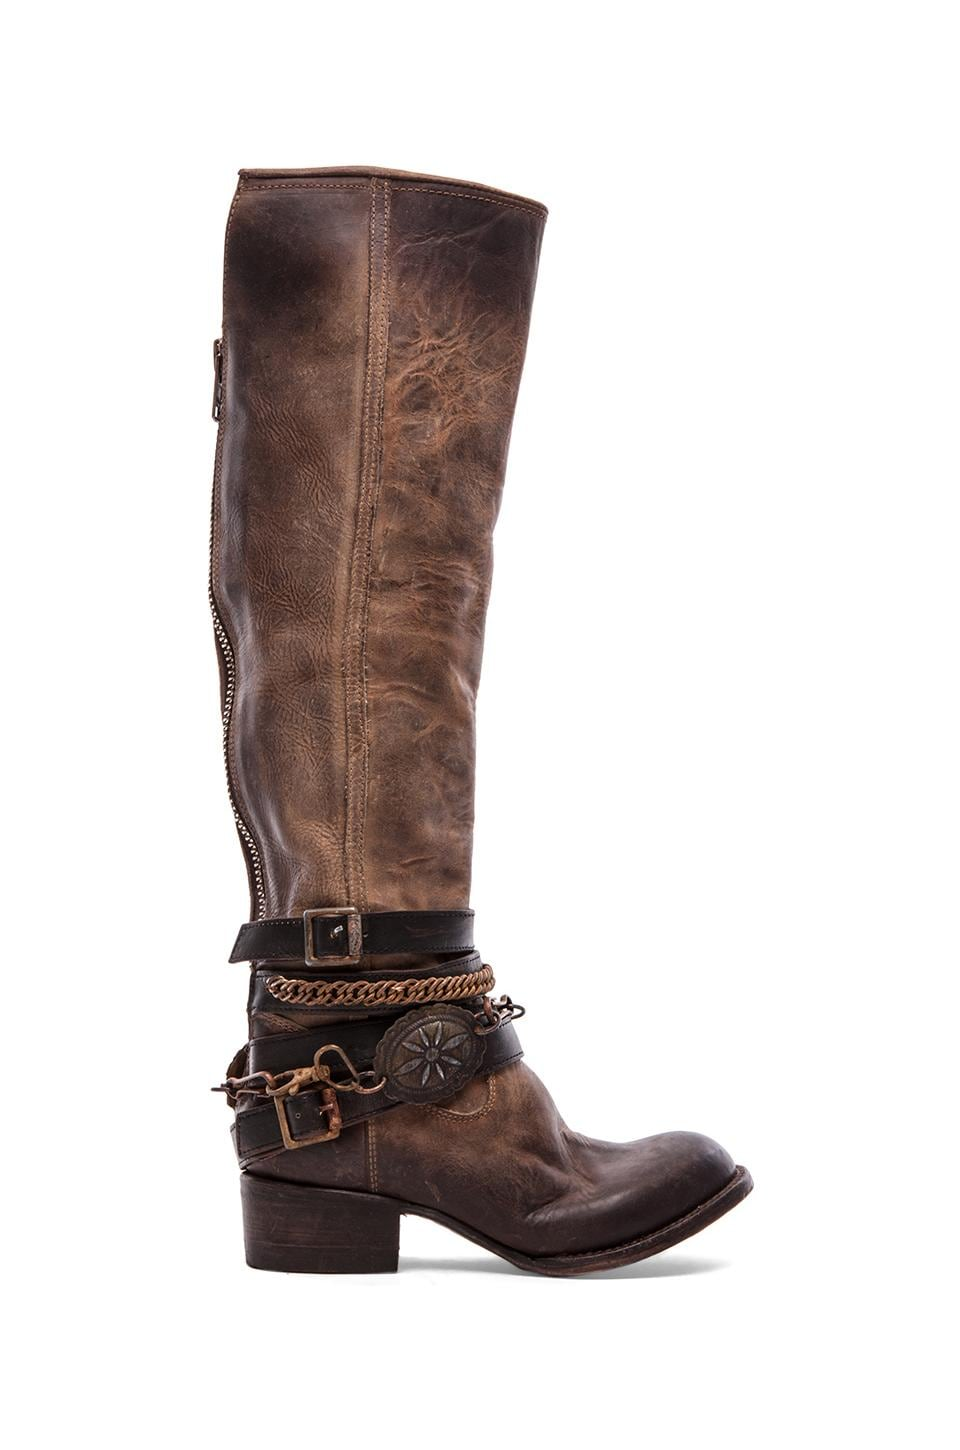 Freebird by Steven Aspen Boot in Brown